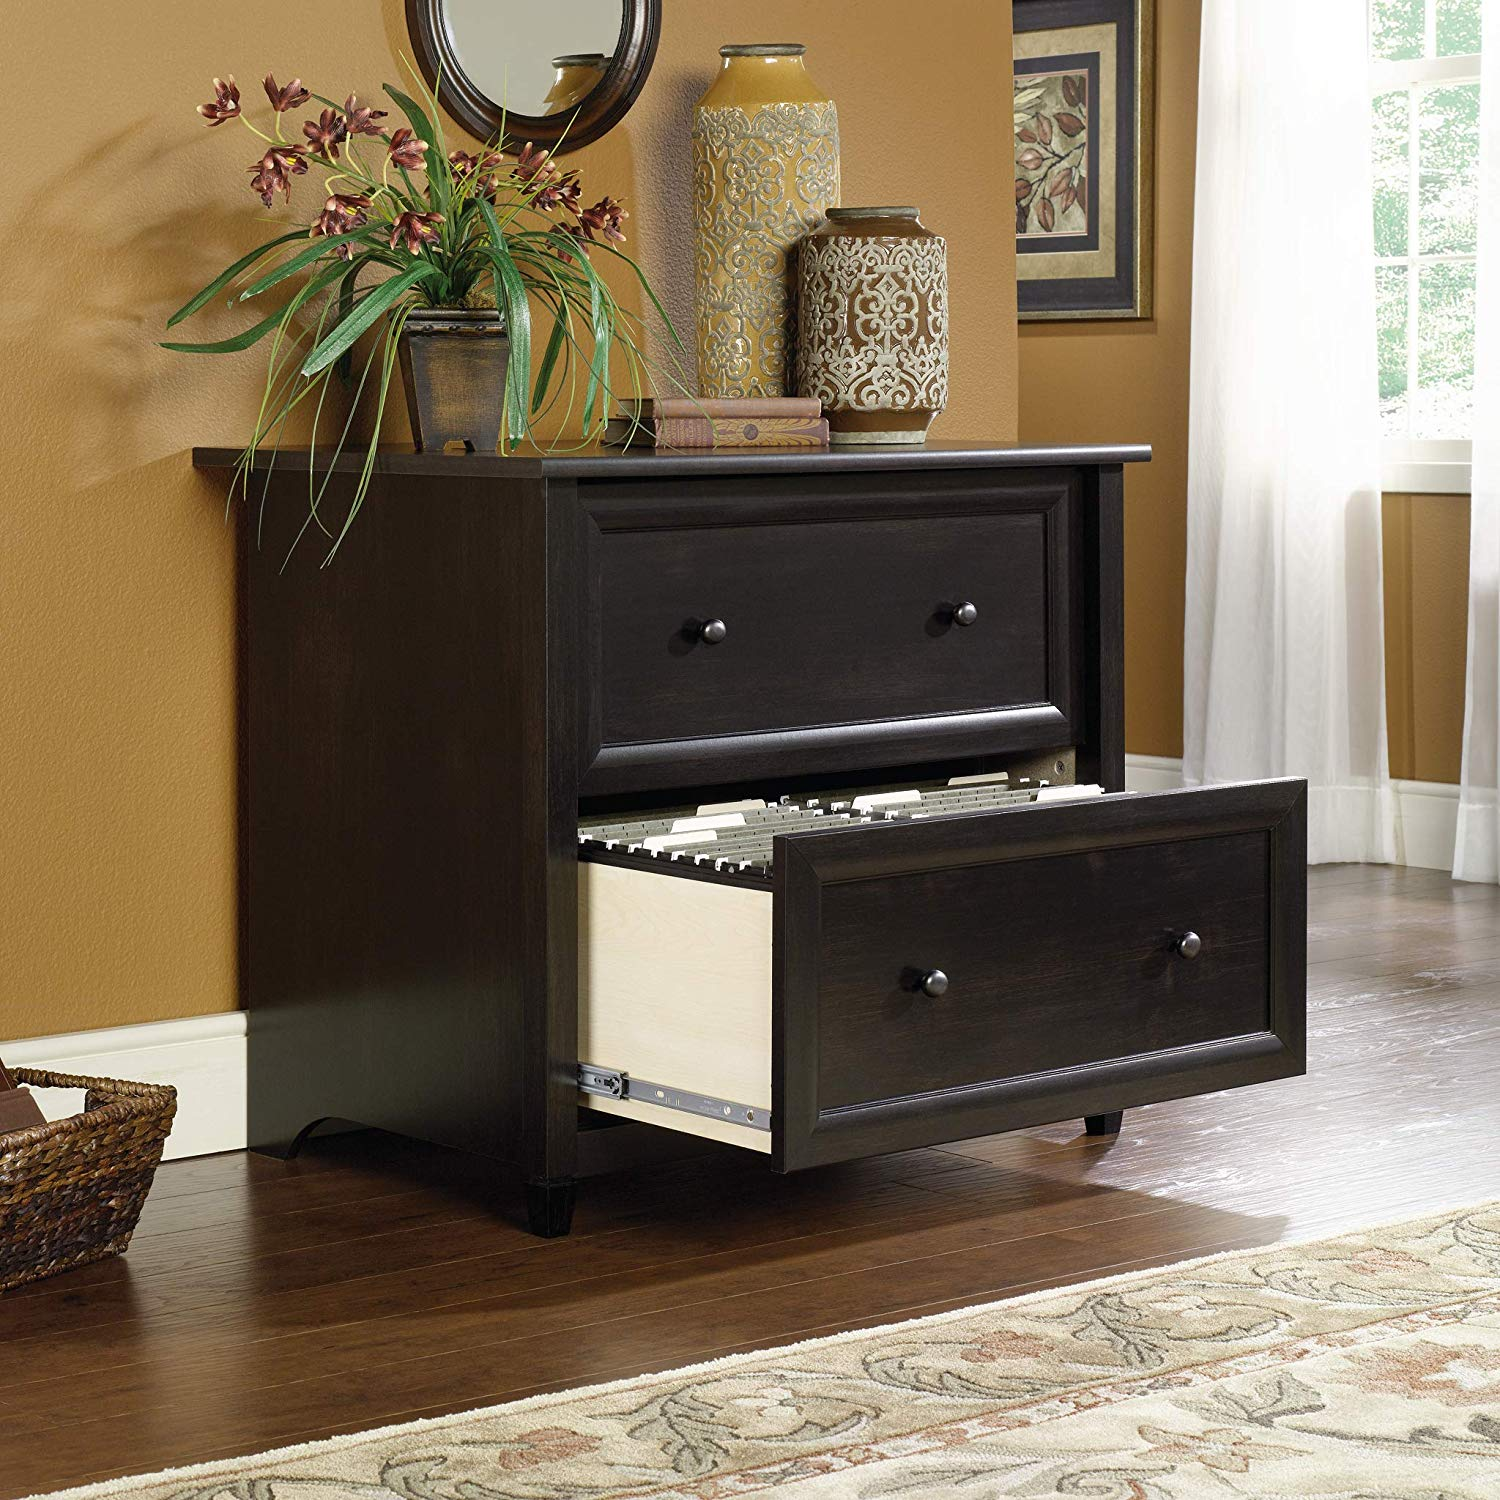 The Best Wooden File Cabinets for Home & Office  Ultimate Reviews